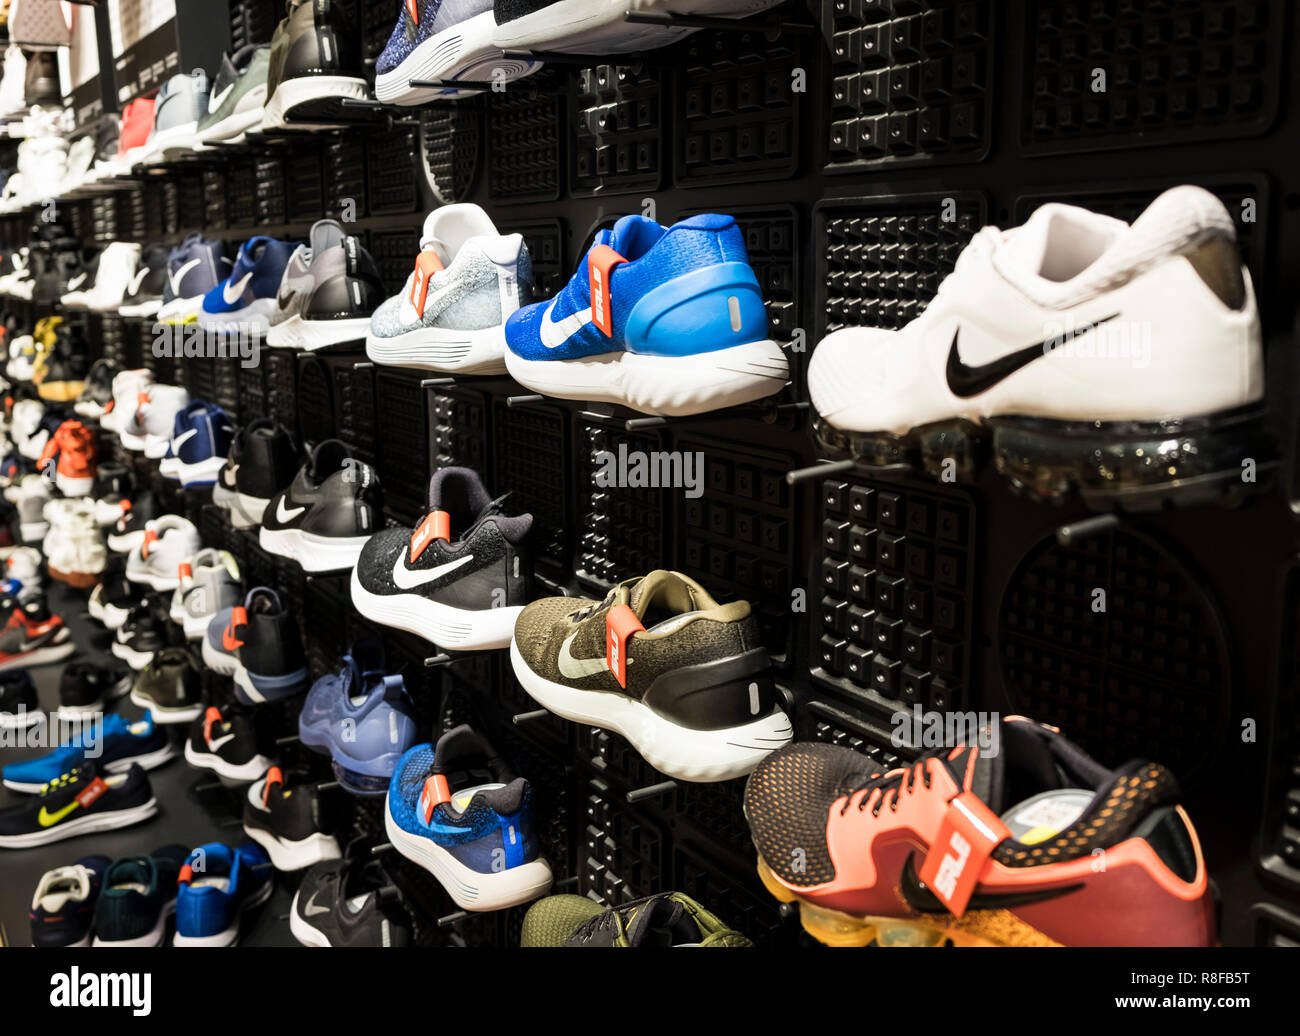 buy popular ad125 87bce Hong Kong, le 7 avril 2019   nike shoes in store Photo Stock